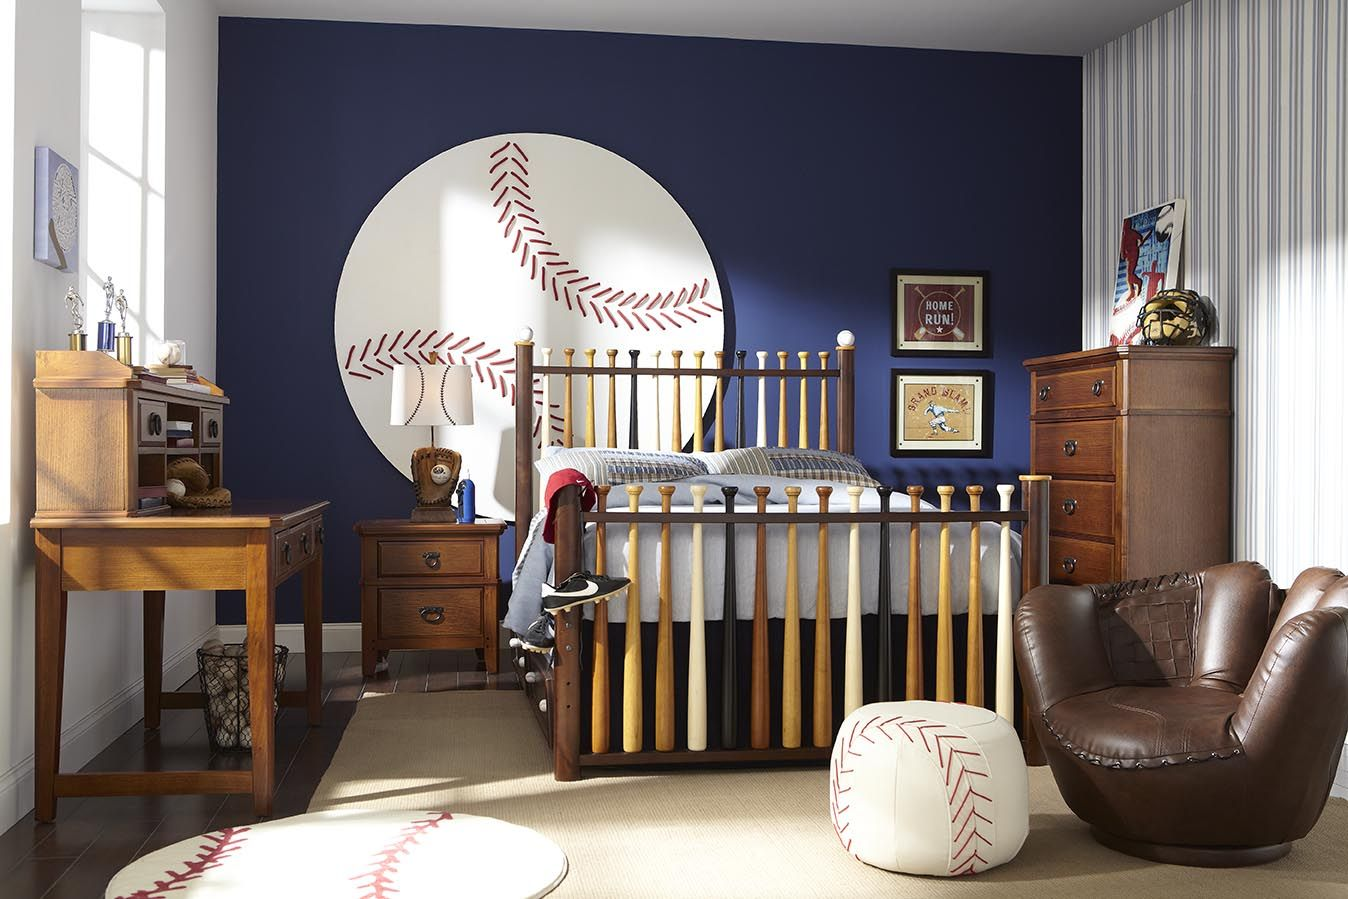 I Think This Would Be My Husband S Dream Room Baseball Themed Bedroom Themed Kids Room Baseball Bedroom